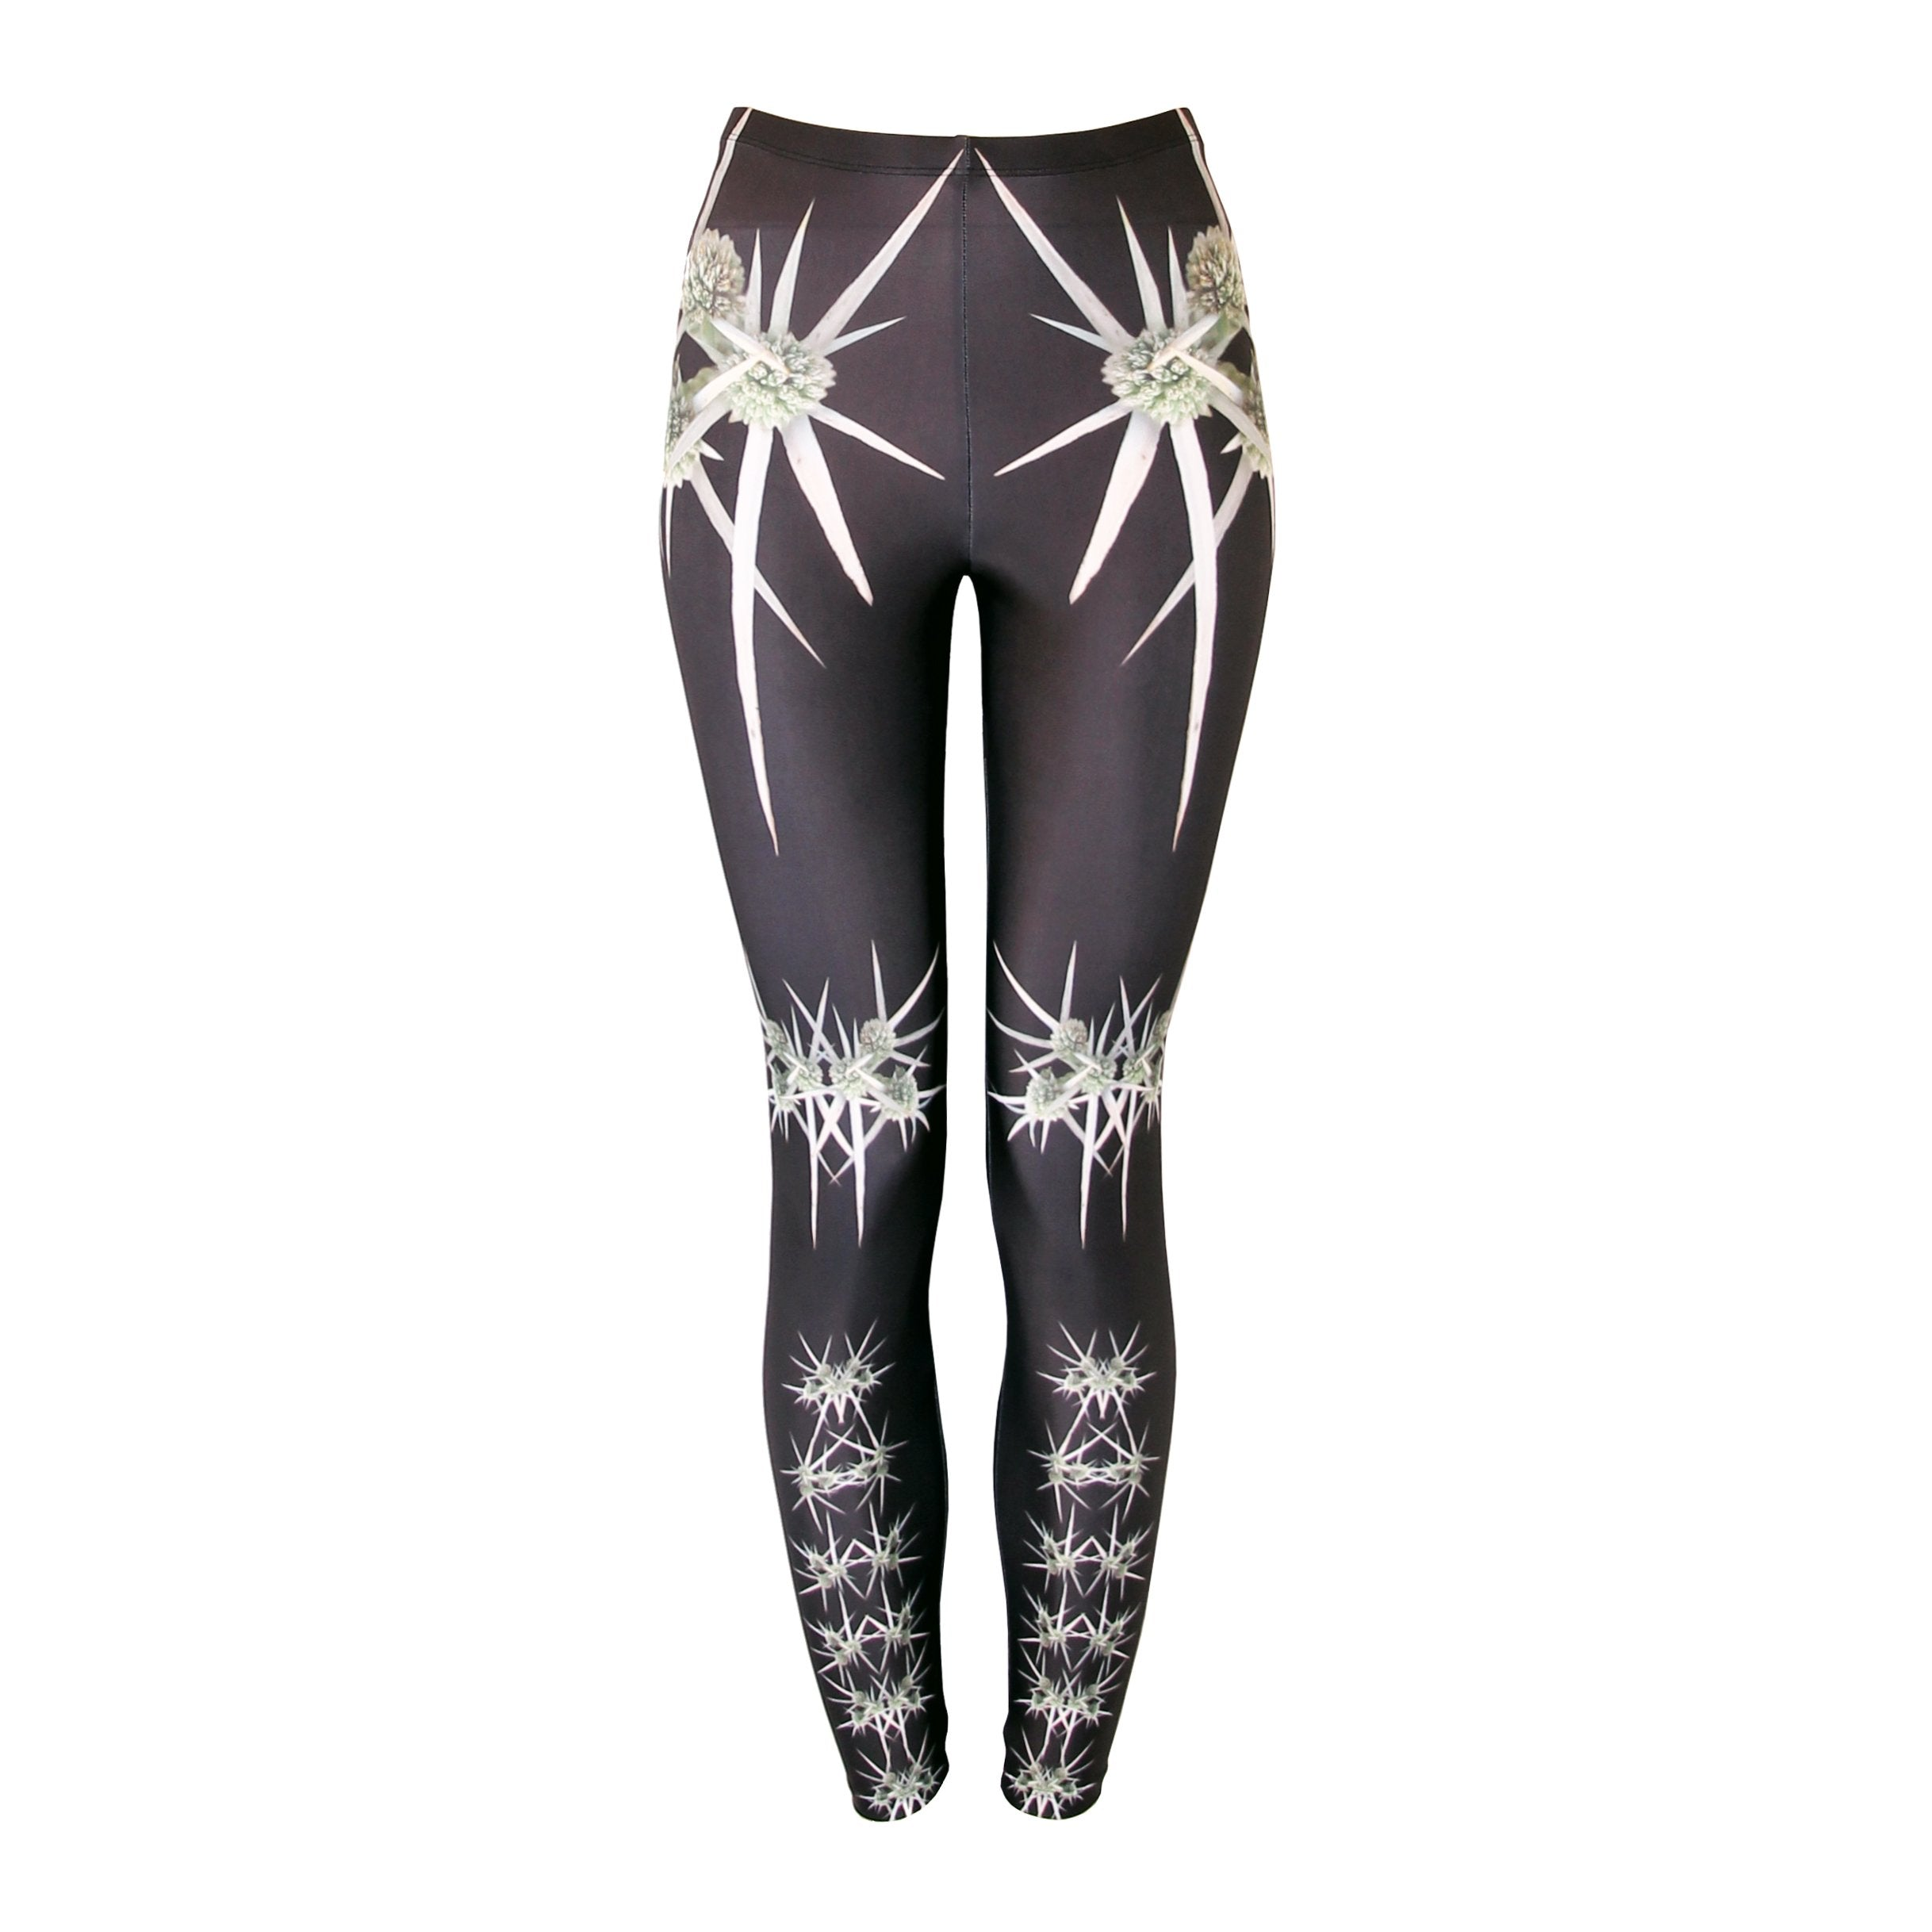 Fashionable sport leggings for fitness, gym and workout